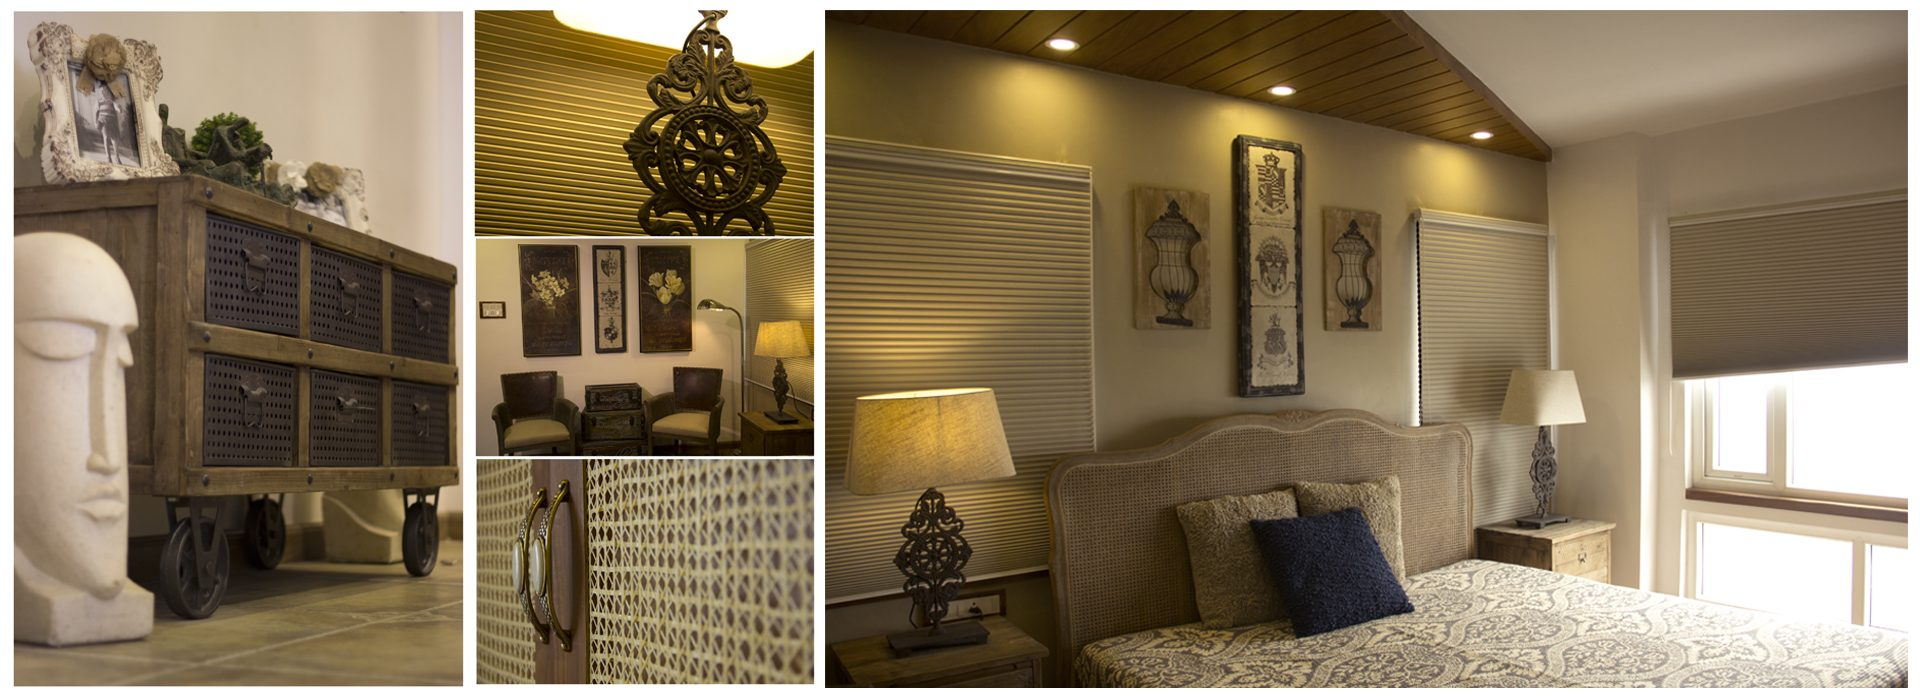 Interior Design Which Style Best Fits Your Home Ed2go Blog: Best Interior Designer In Bangalore And Interior